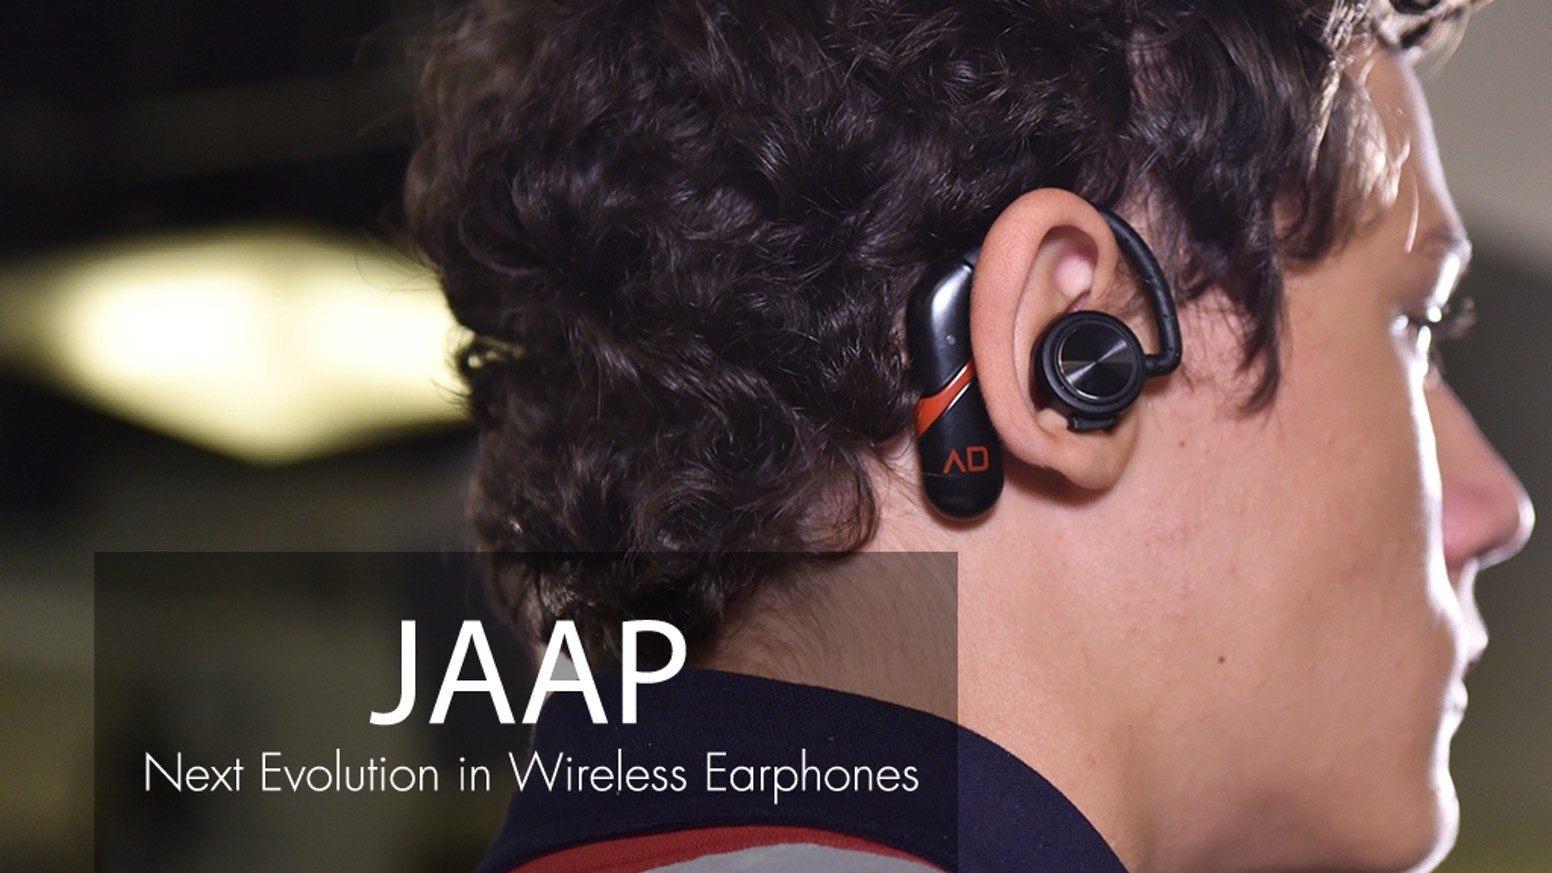 JAAP solves the two most pressing problems associated with truly wireless earphones: poor battery life and poor fit